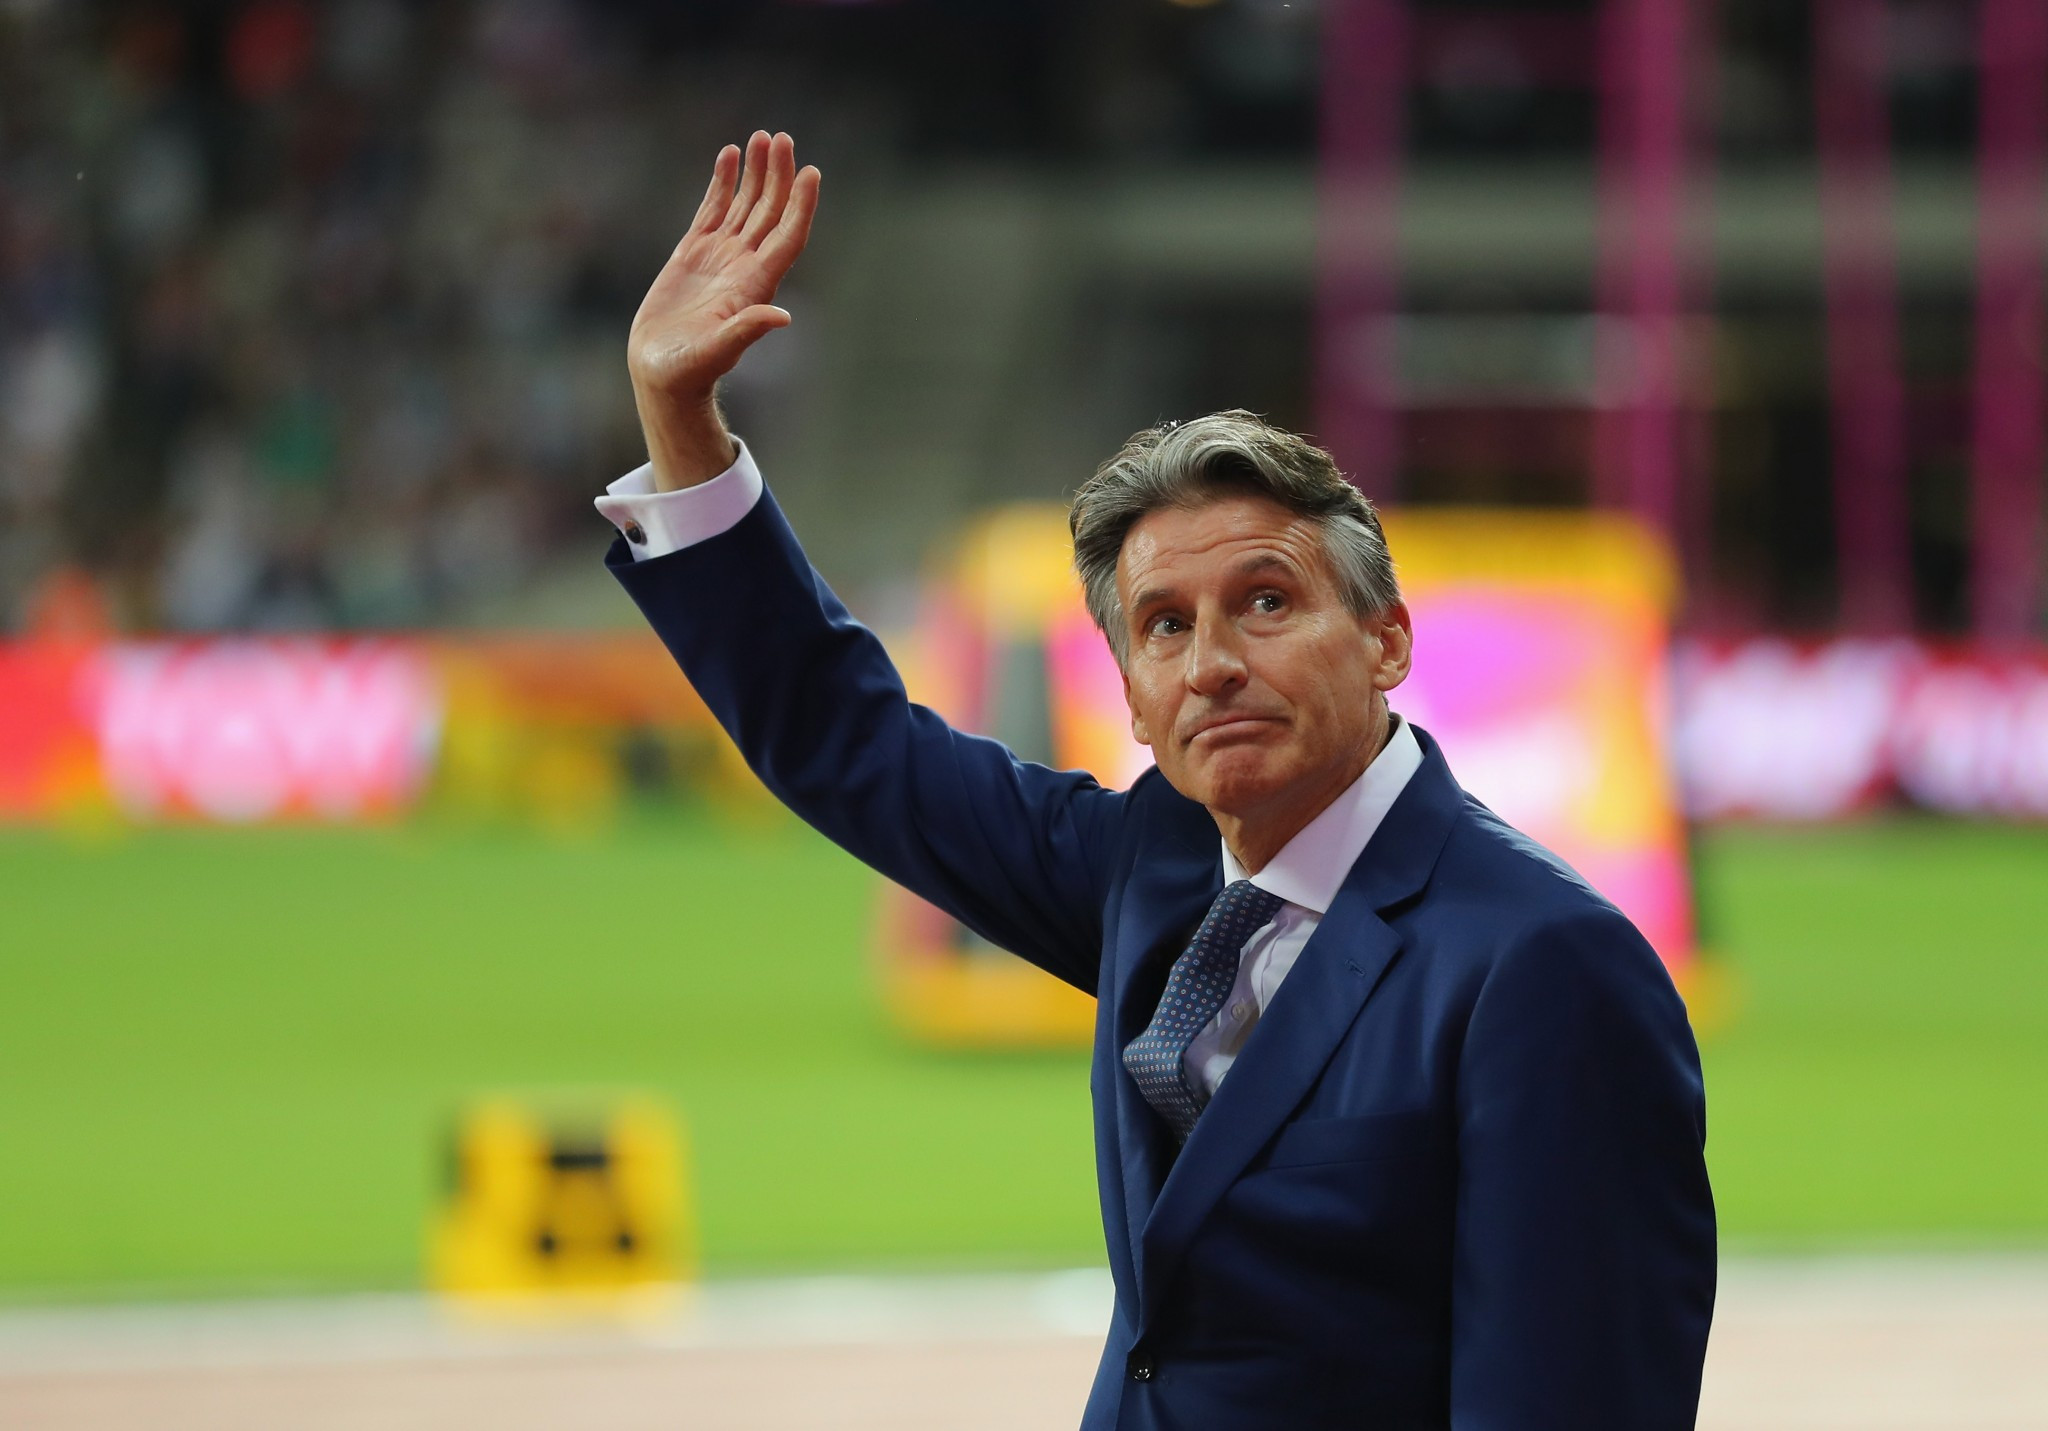 IAAF President Sebastian Coe has hinted his uncertainty towards the validity of a women's 50km race as a World Championships event ©Getty Images